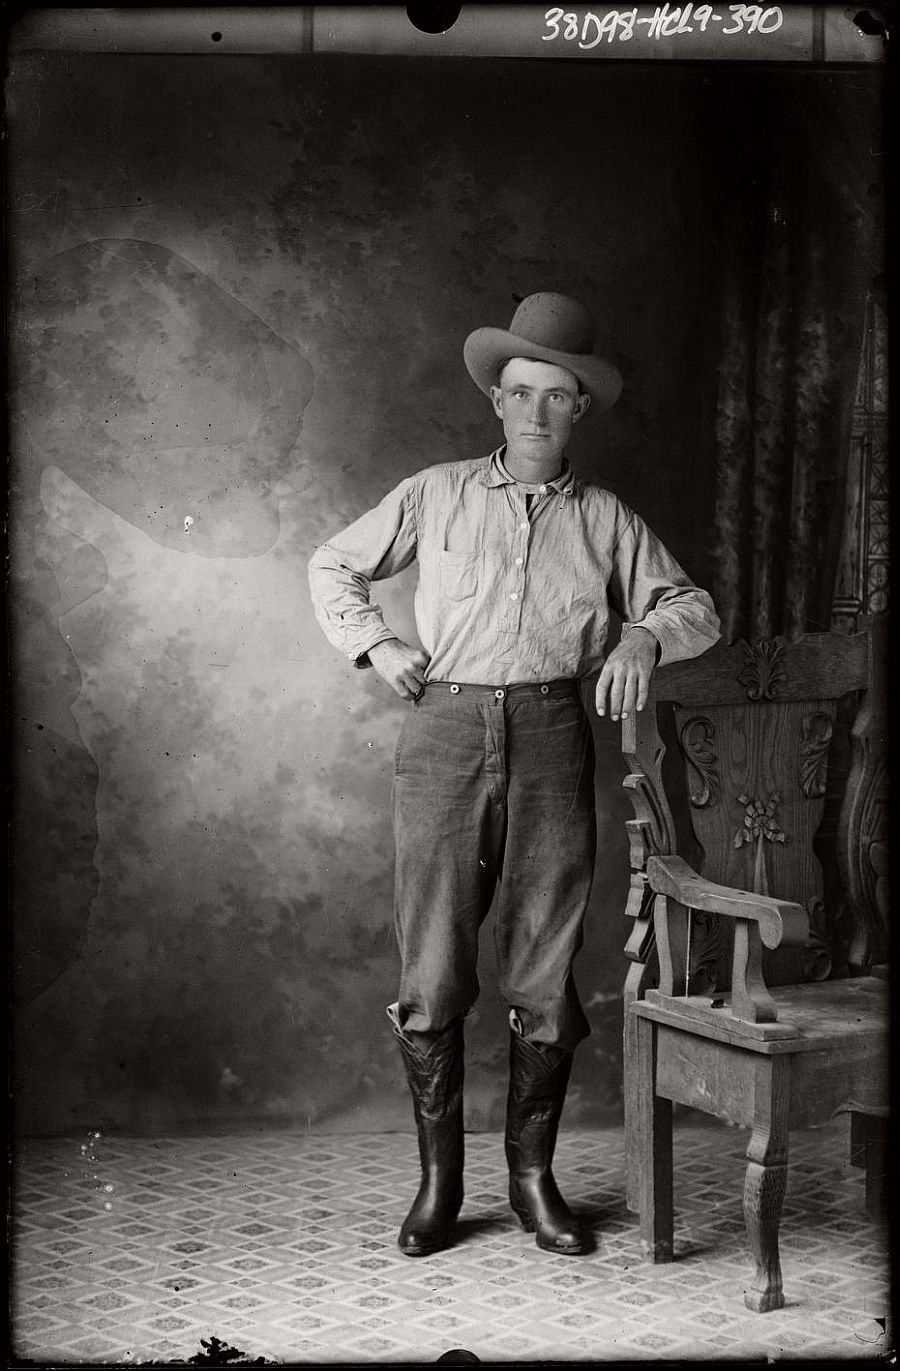 vintage-texan-portraits-by-julius-born-early-xx-century-24